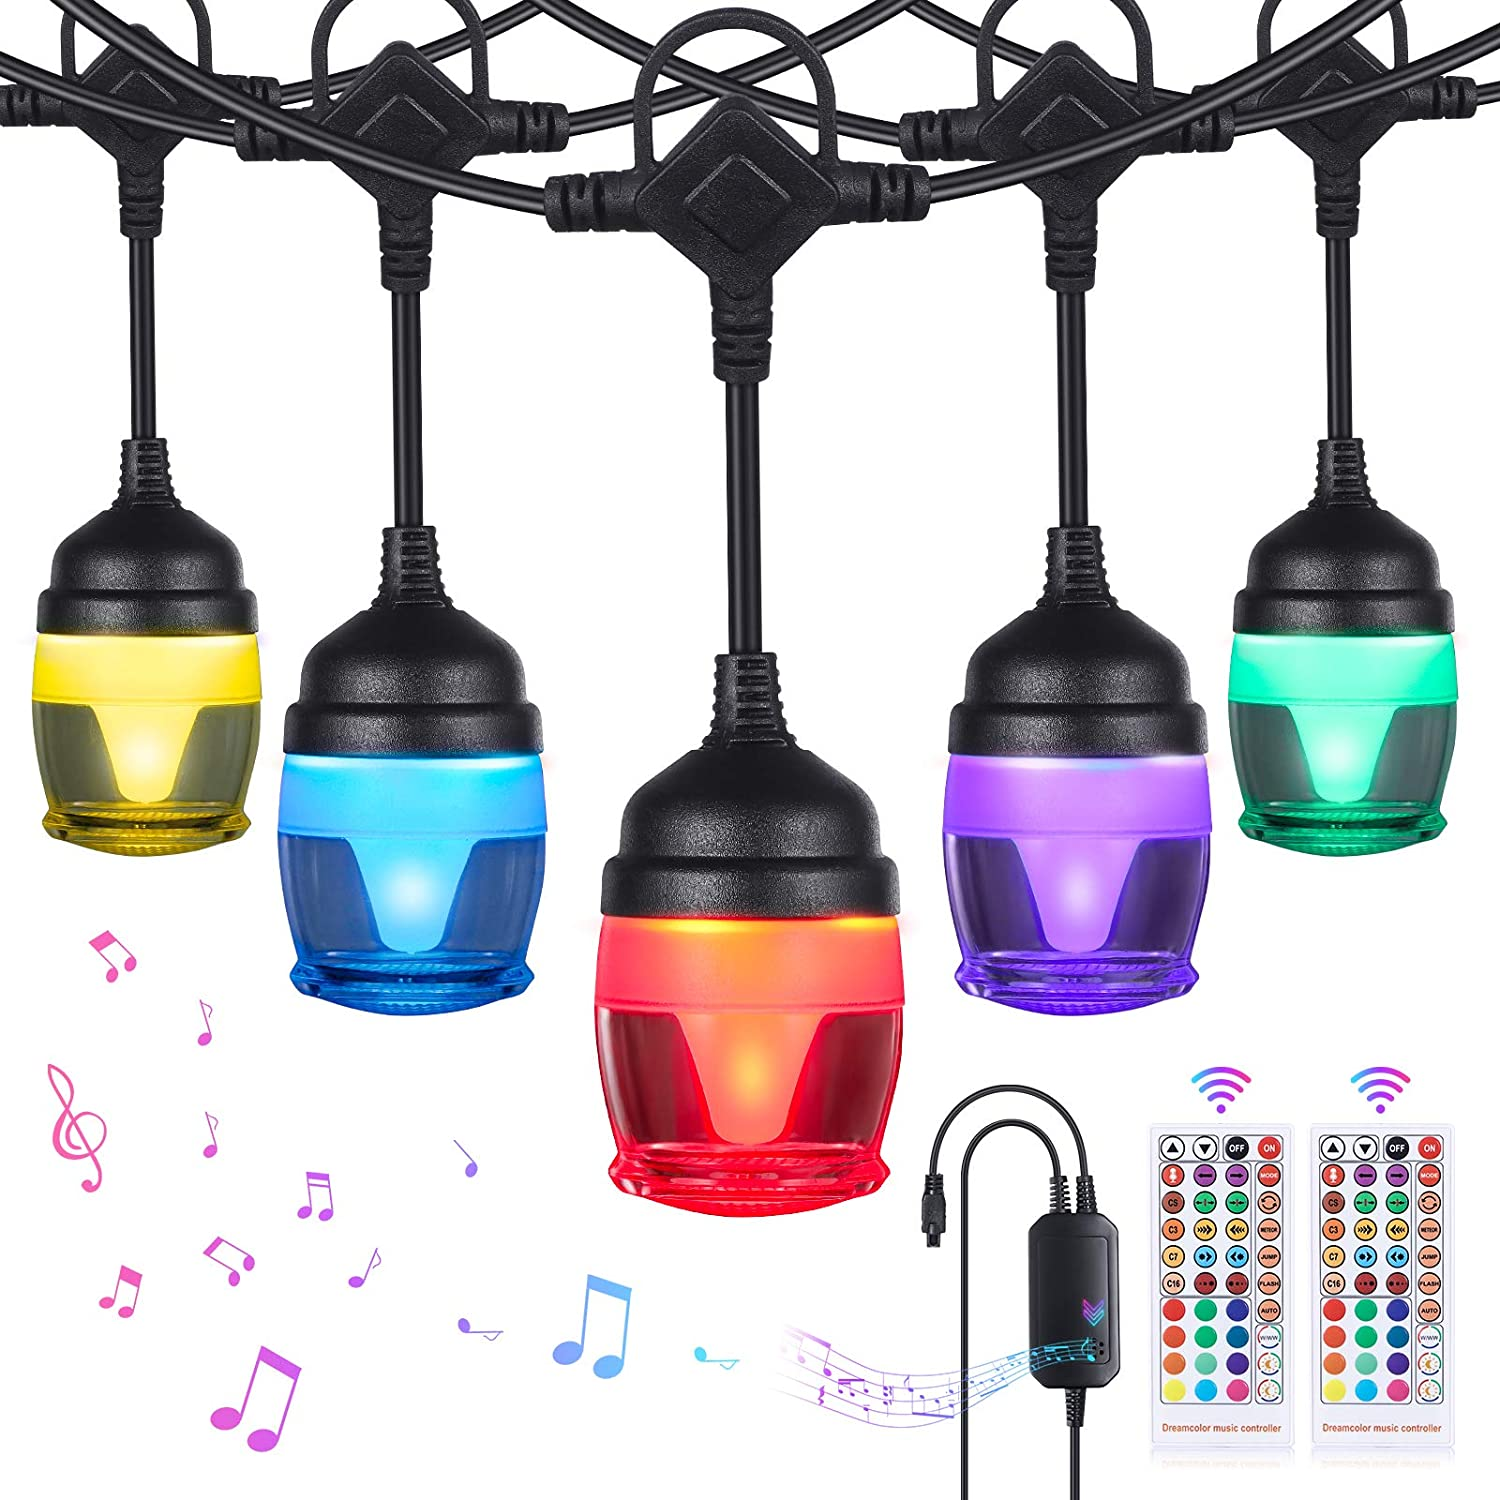 YUNLIGHTS Color Changing Outdoor String Lights - 41FT RGB String Lights Music Sync with 14 F12c Bulbs, IP65 Waterproof & Shatterproof Dimmable LED Patio Lights for Party Backyard Garden Christmas